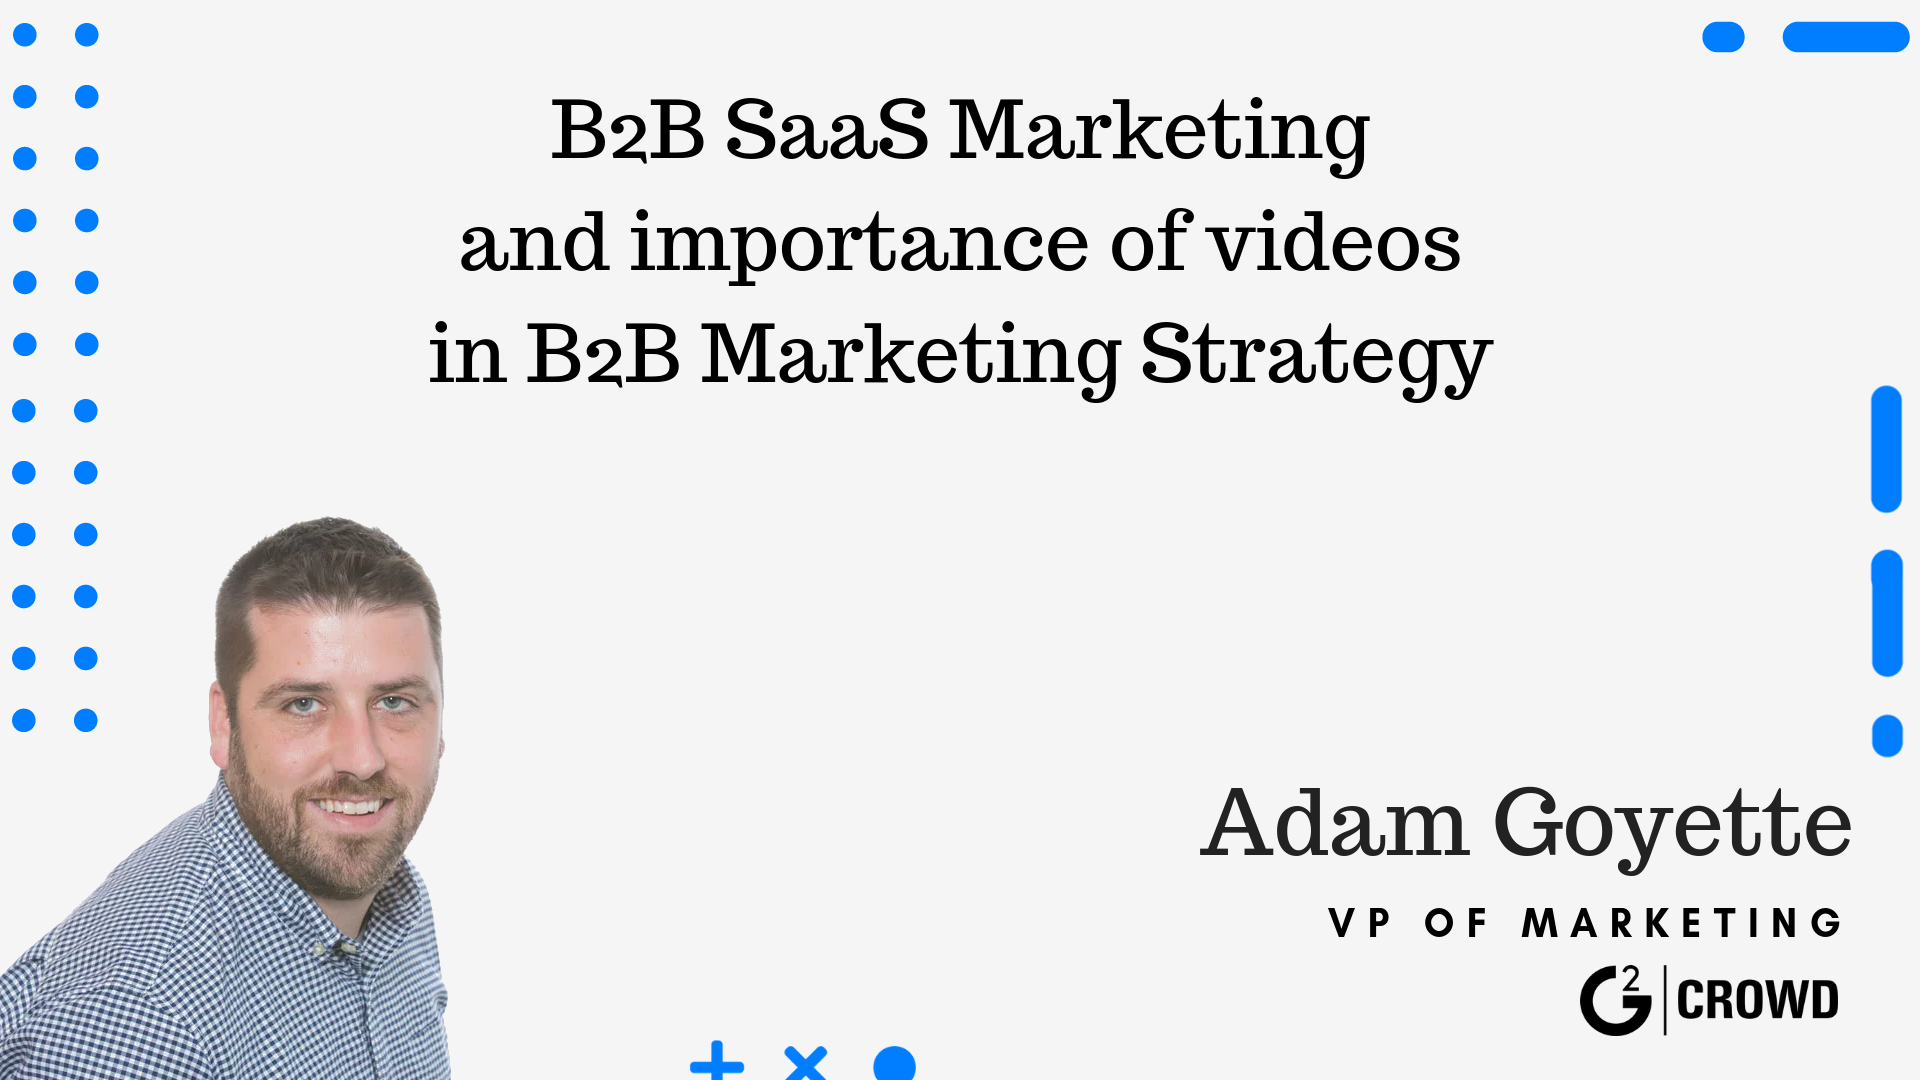 Adam Goyette on B2B SaaS Marketing